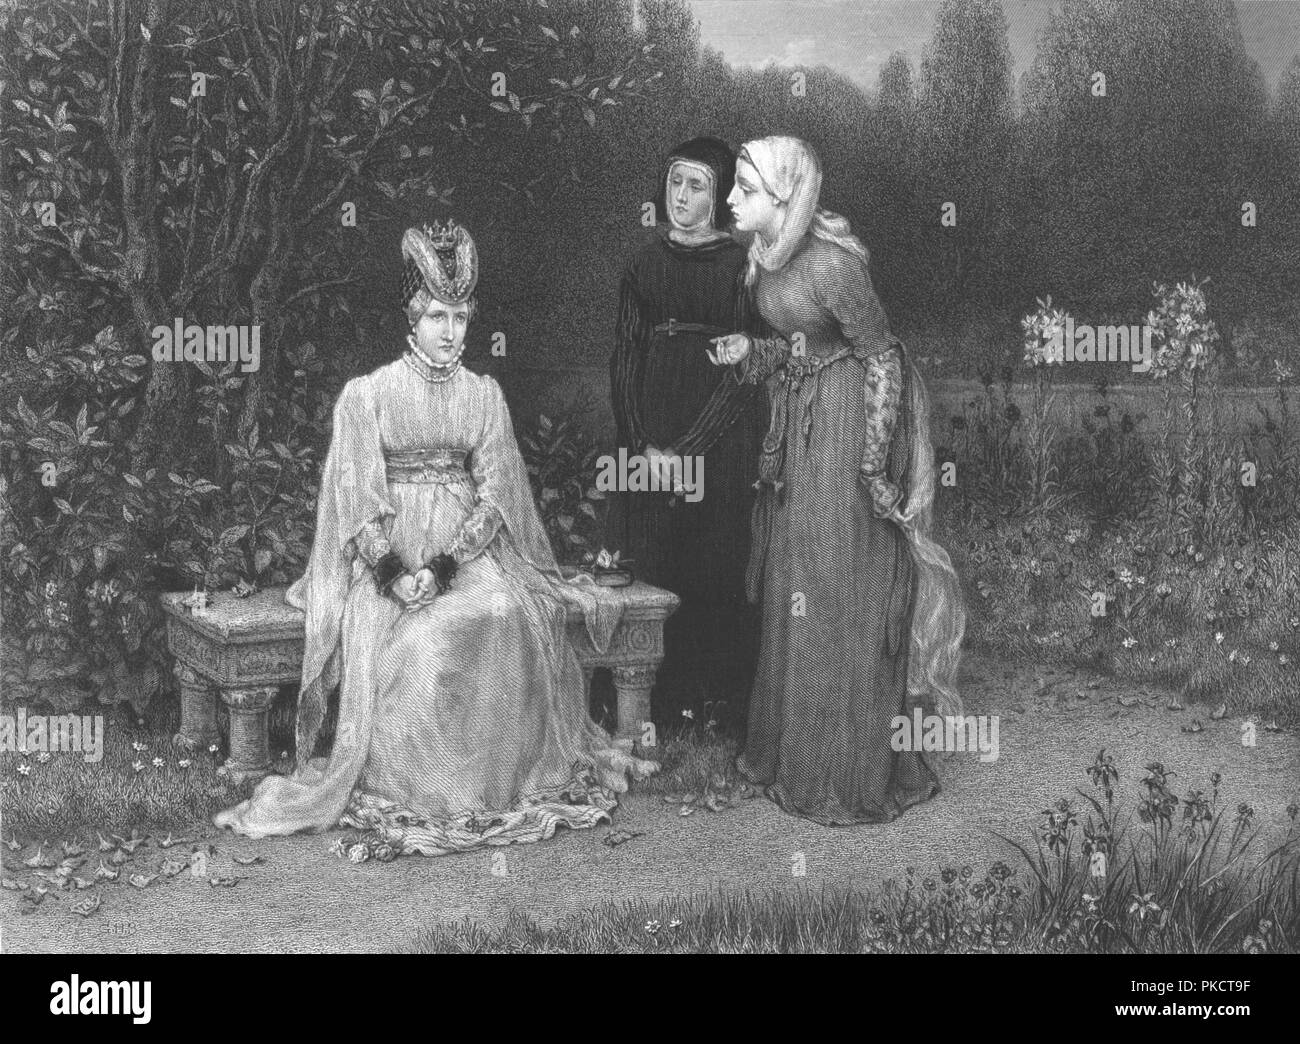 'Queen Isabella and her ladies', c1870. 19th century imagining of a scene from Richard II, play by William Shakespeare, showing Isabella of Valois (1389-1409) queen consort of Richard II, King of England. - Stock Image